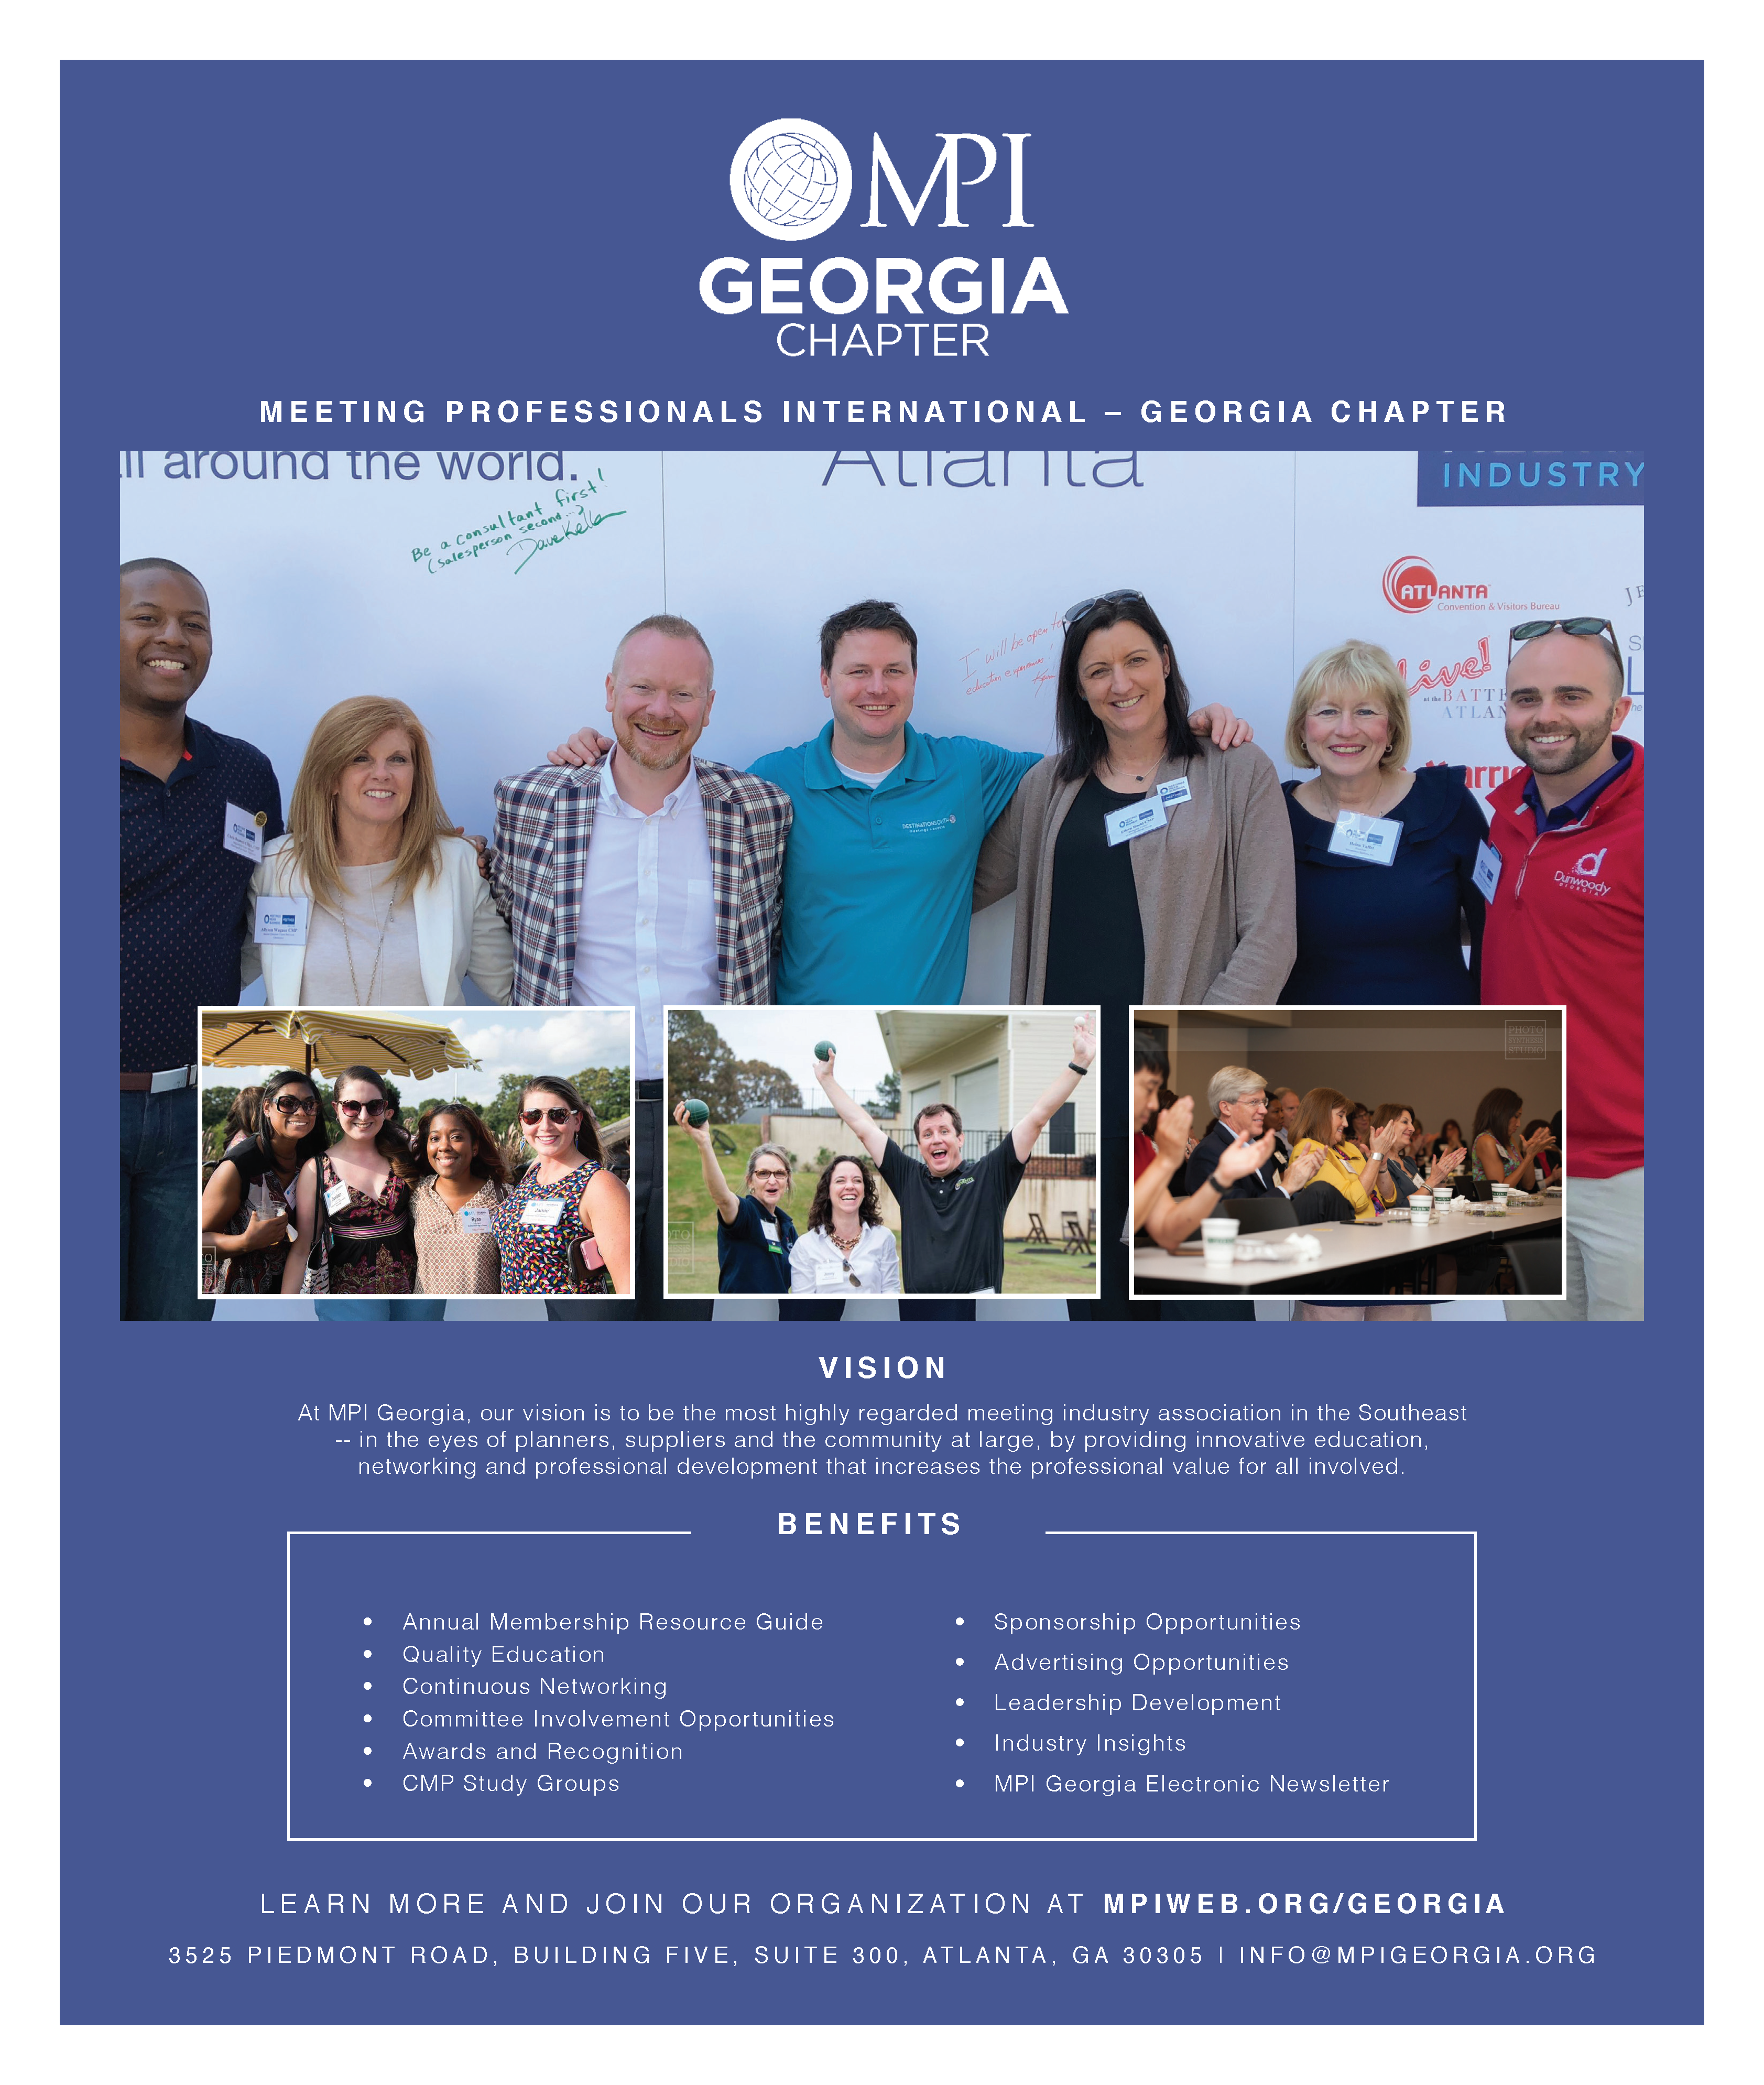 MPI Georgia Modern Luxury Membership Graphic